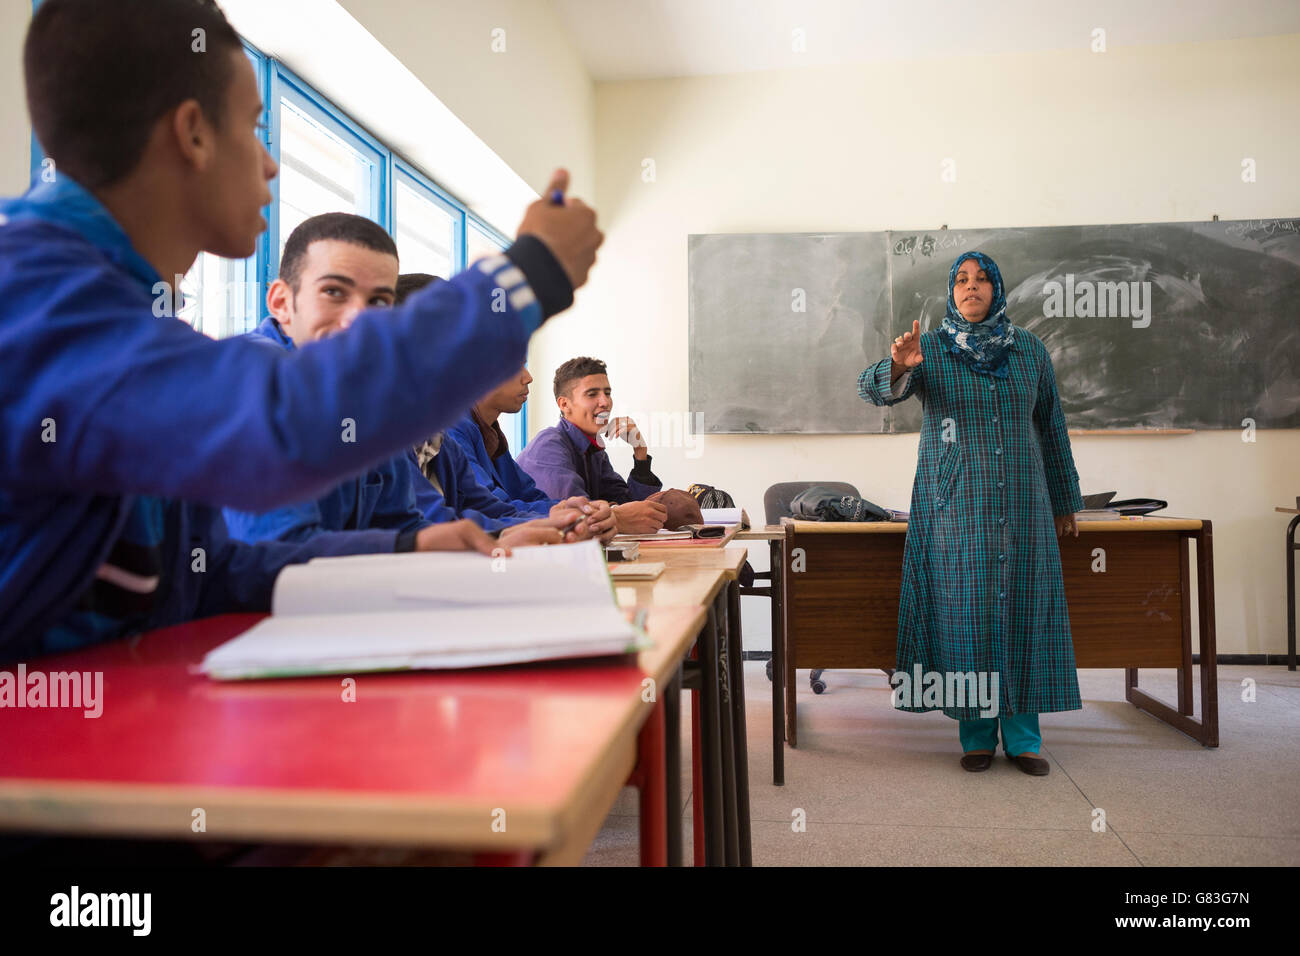 Students learn in a vocational training course in Agadir, Morocco. - Stock Image